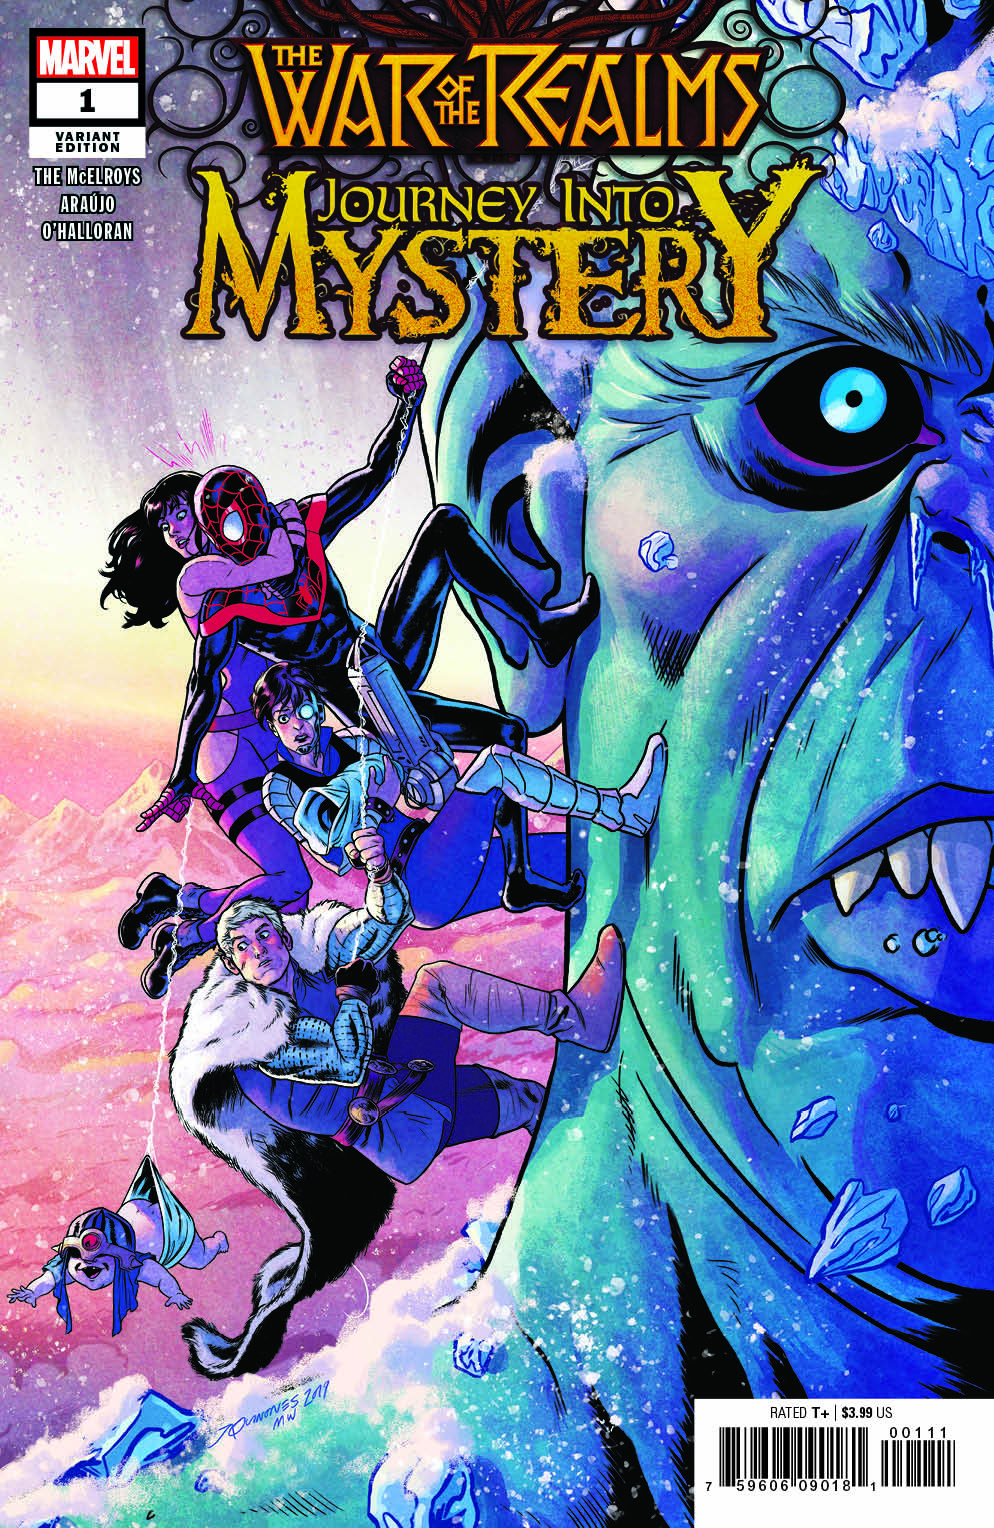 War of the Realms: Journey Into Mystery #1